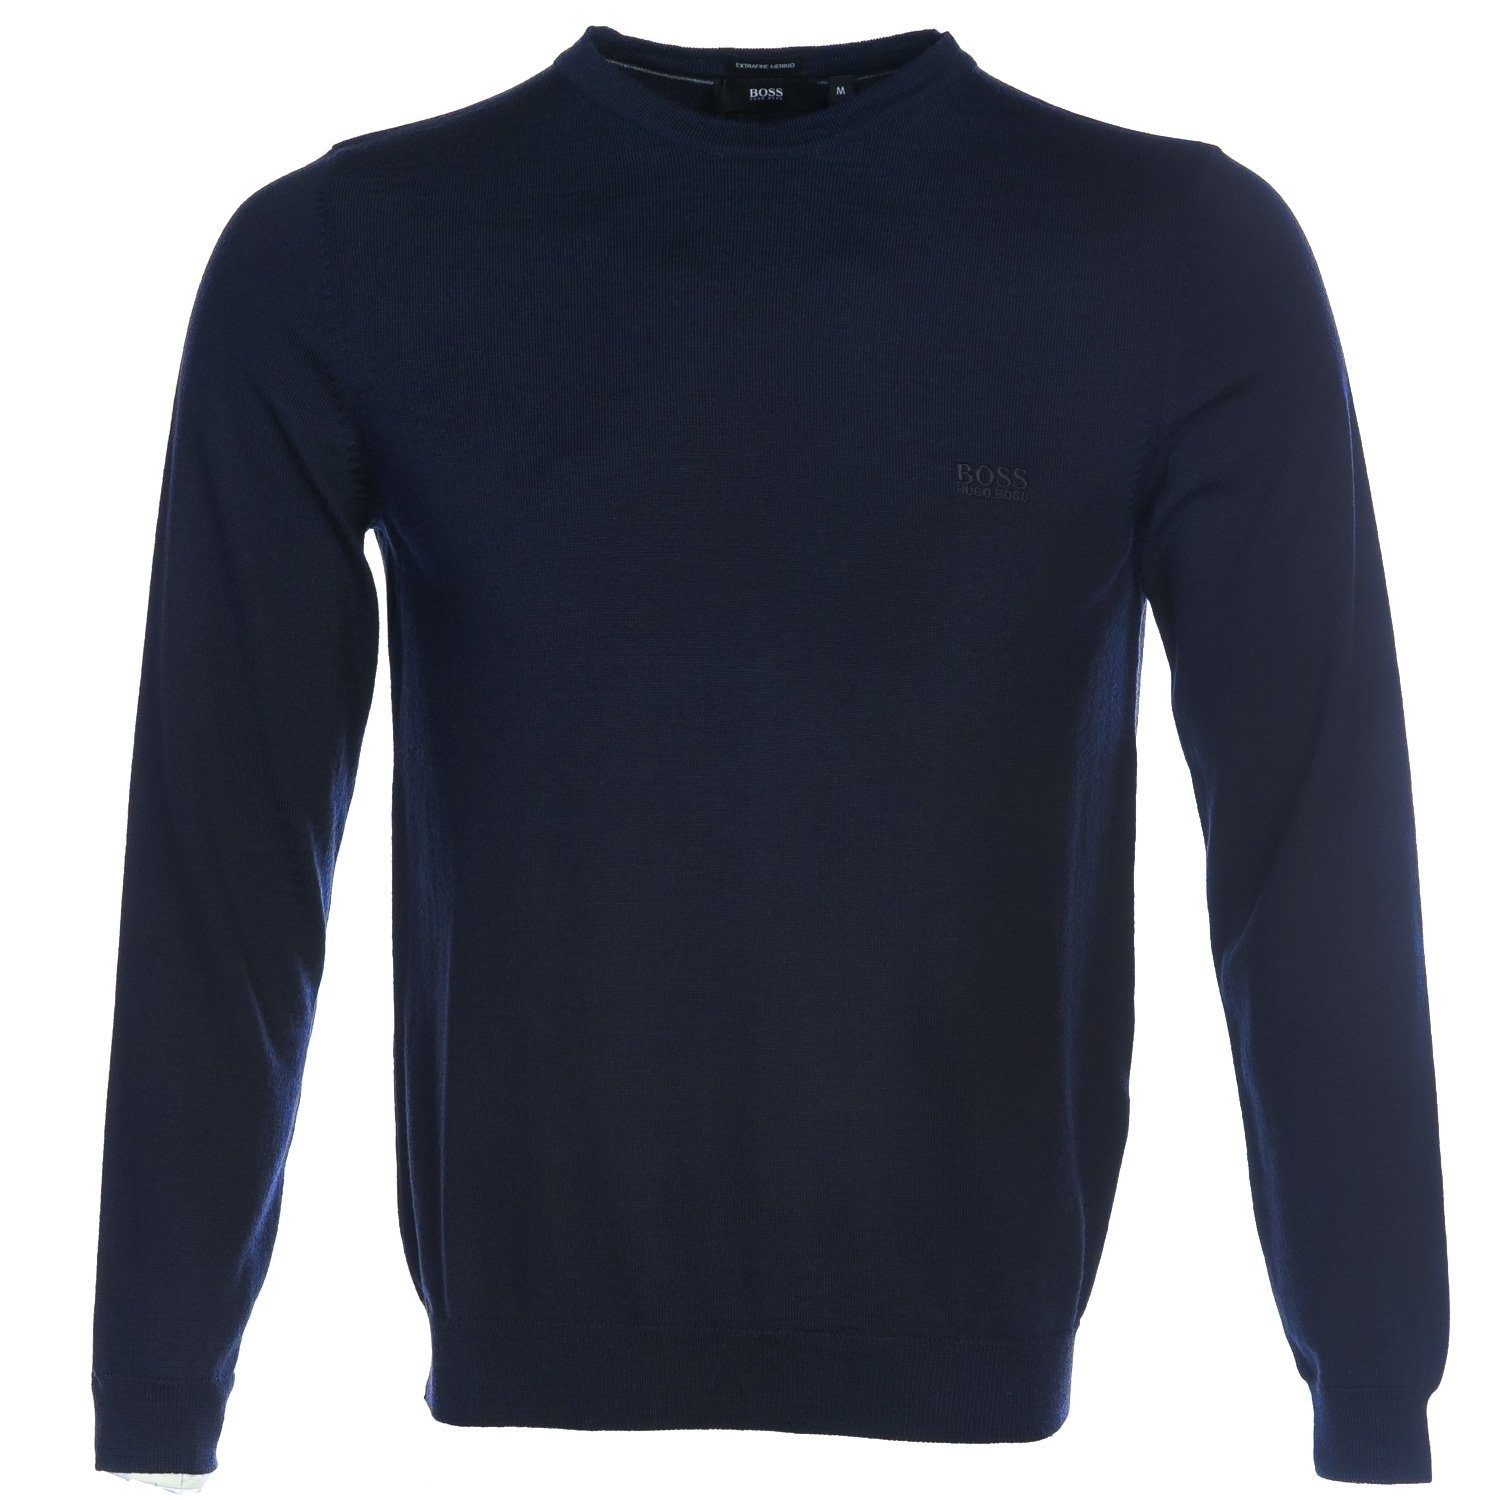 HUGO BOSS Boss Botto-L Knitwear in Navy Boss Hugo Boss